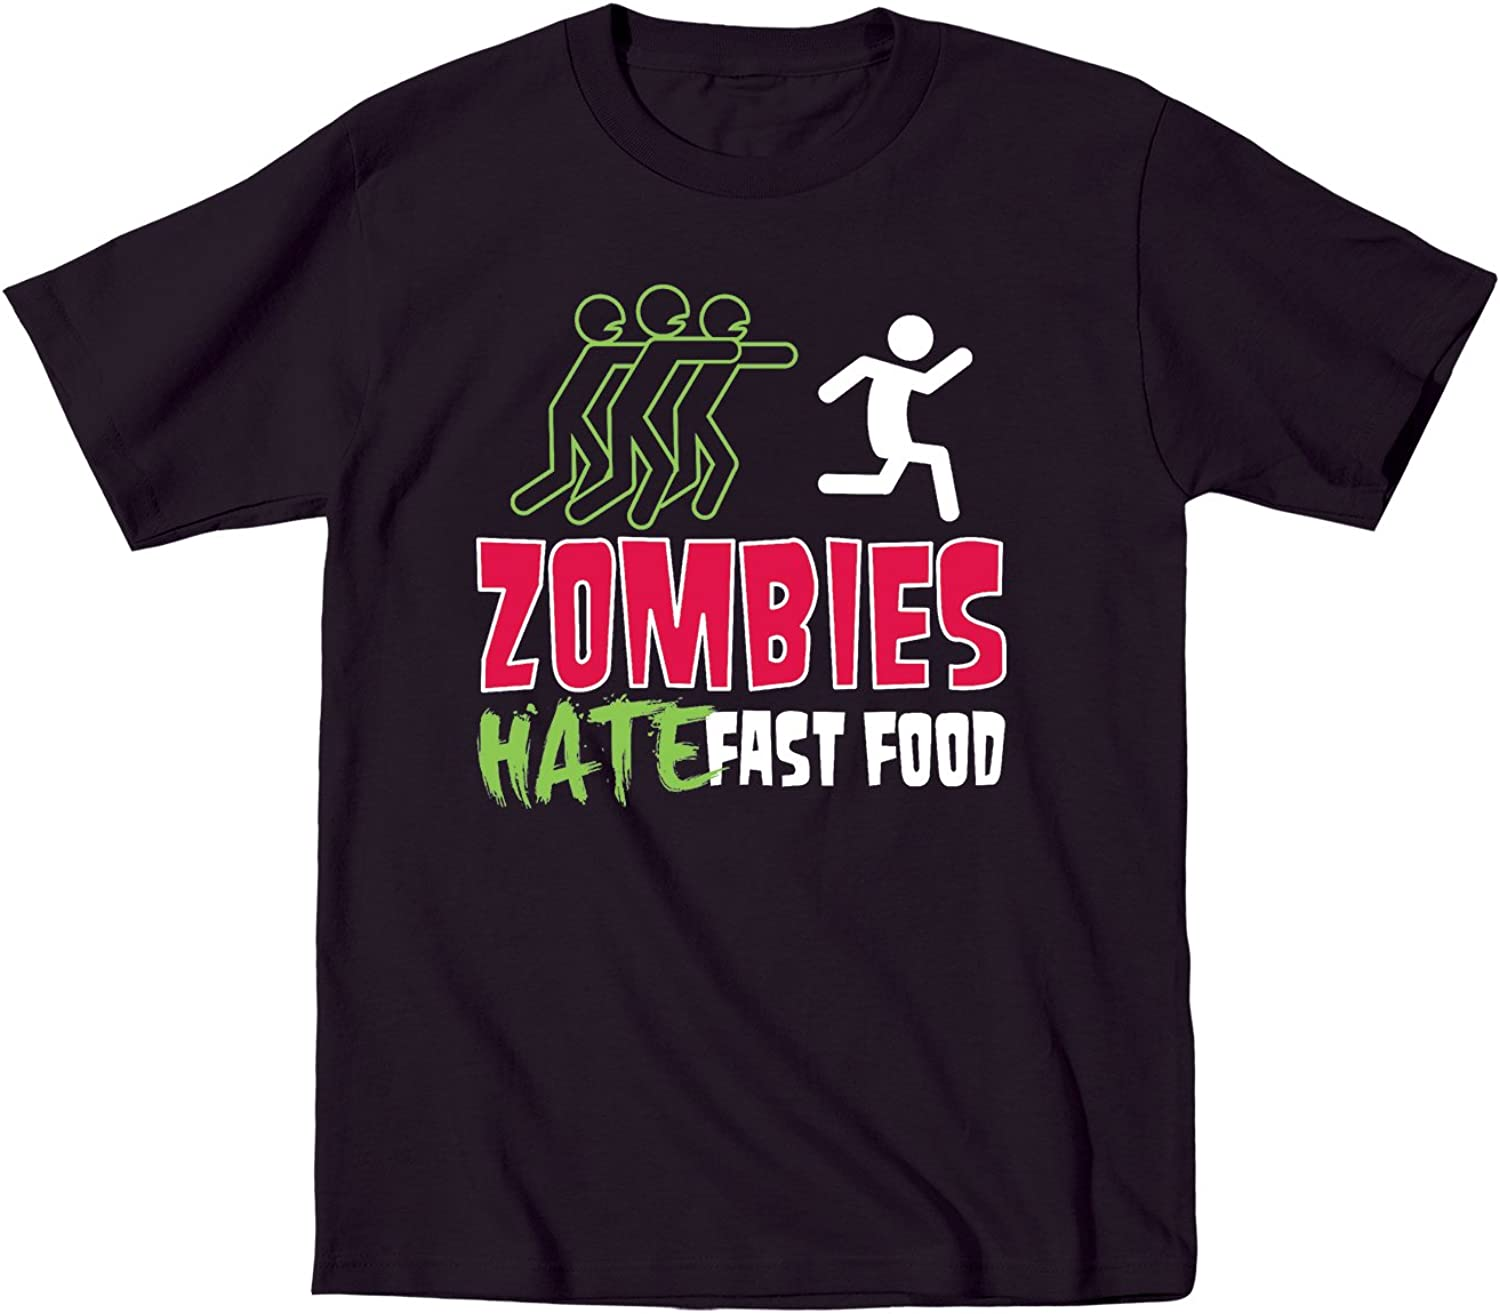 Zombies Hate Fast Food Funny Novelty Walkers - Youth Short Sleeve Graphic T-Shirt